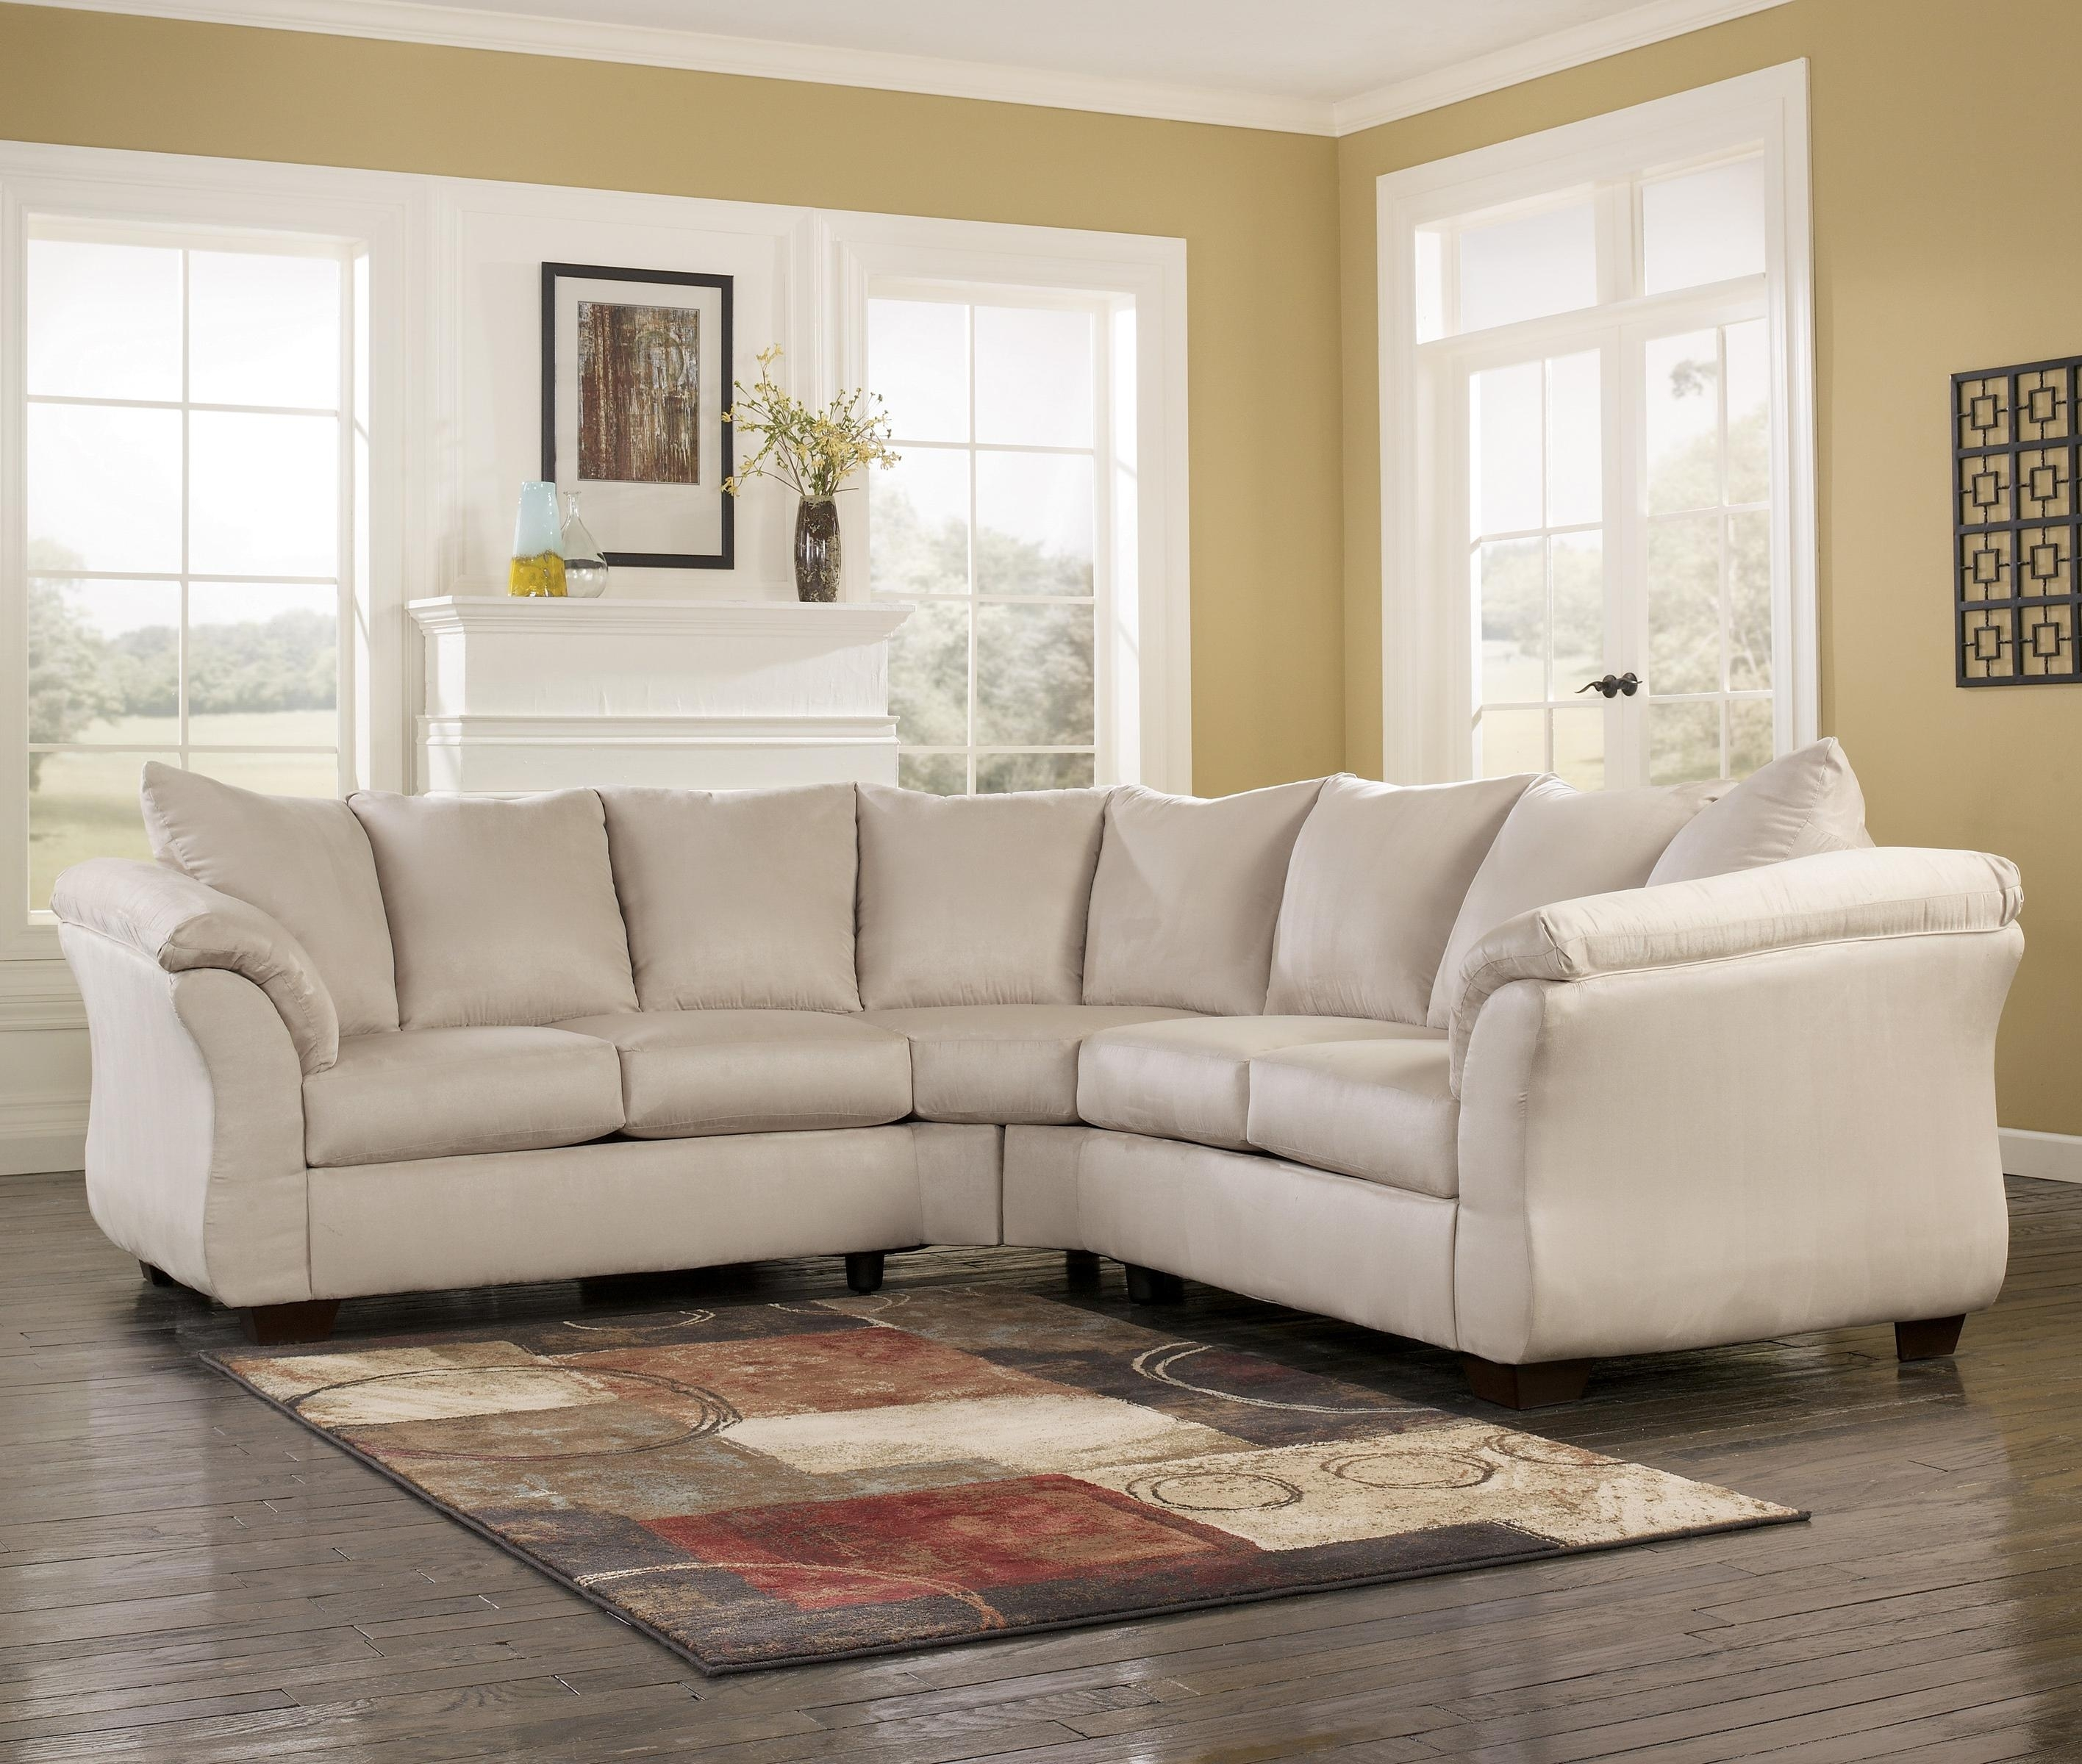 Signature Designashley Darcy – Stone Contemporary Sectional Sofa For El Paso Tx Sectional Sofas (View 3 of 10)